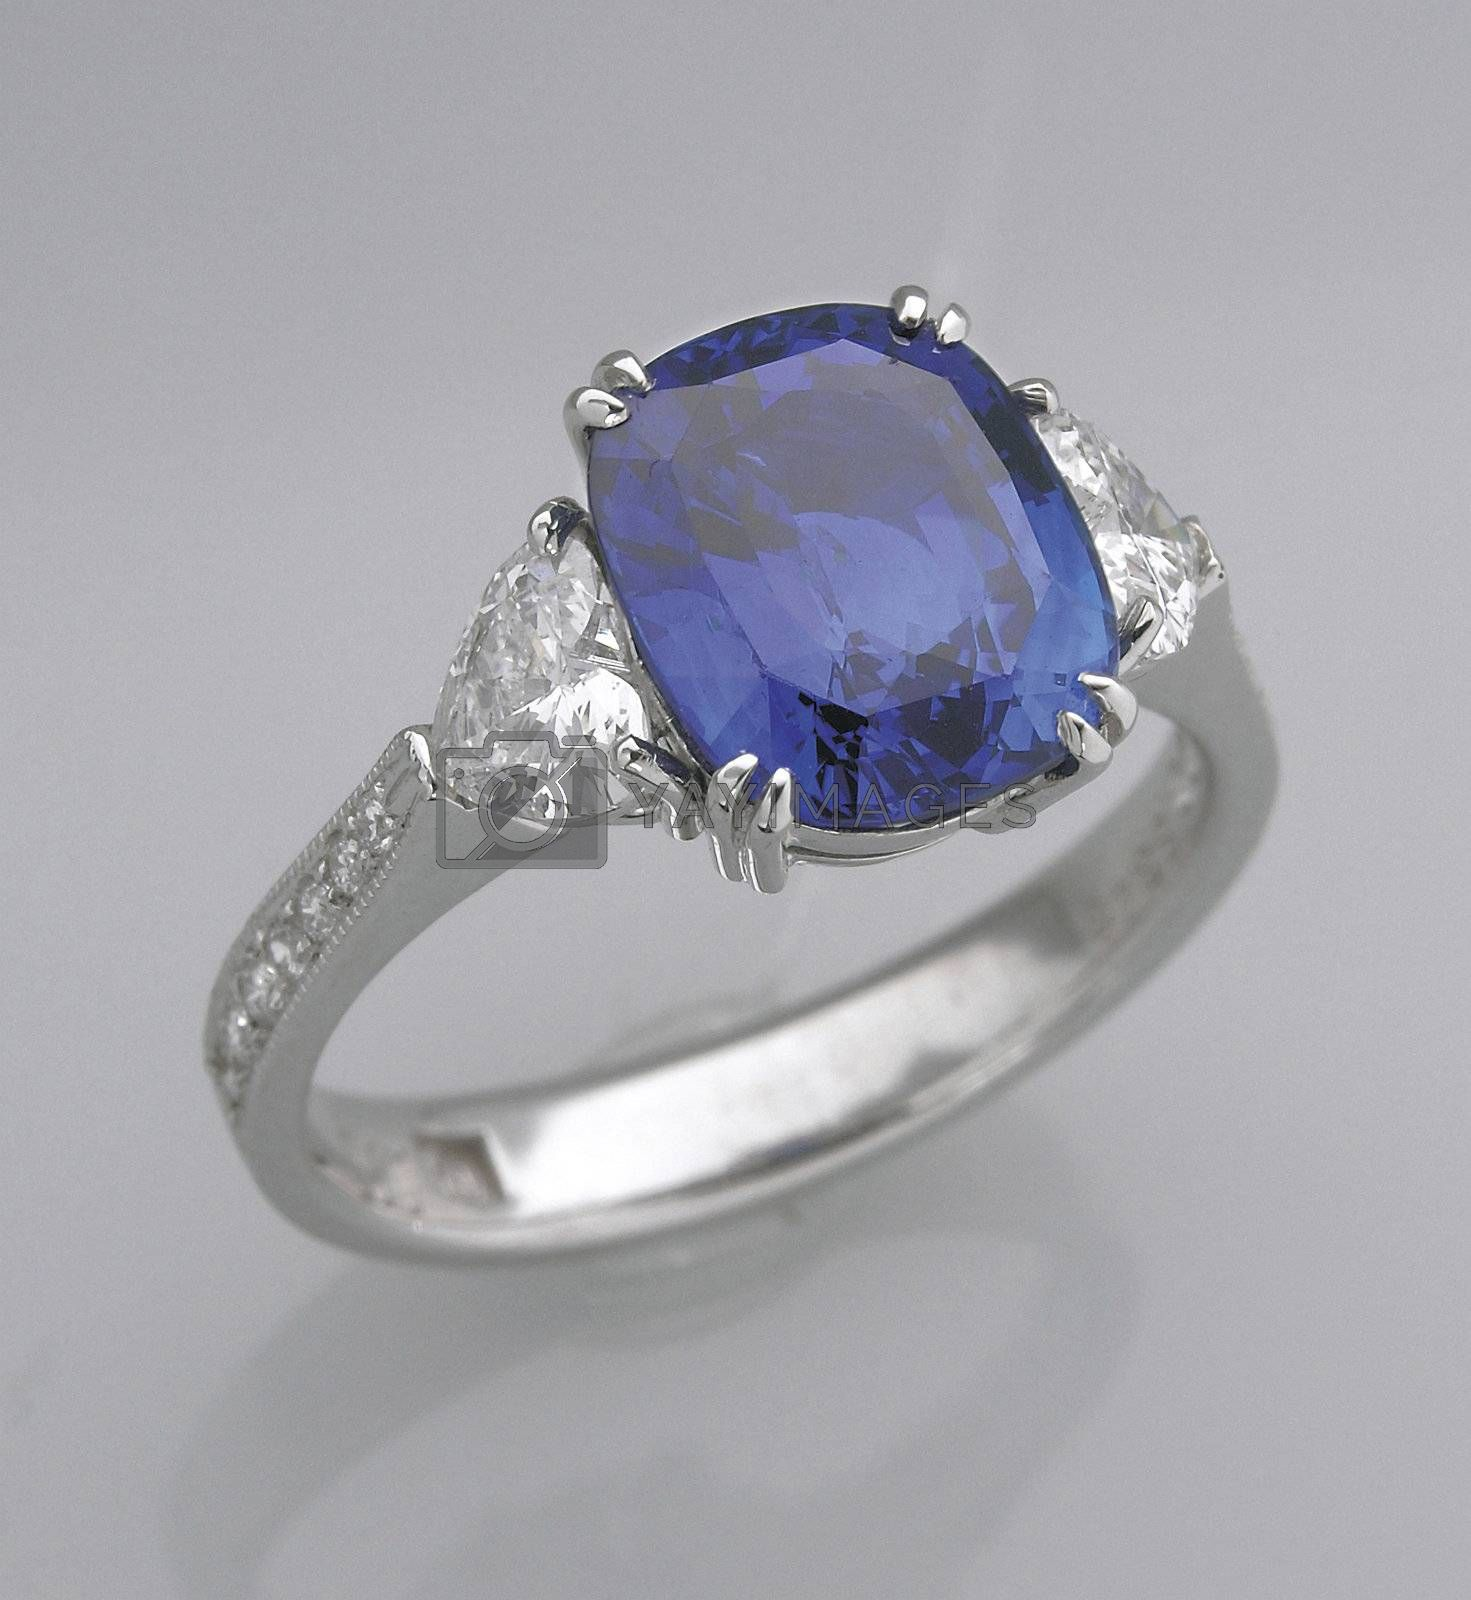 A sapphire ring on the table.